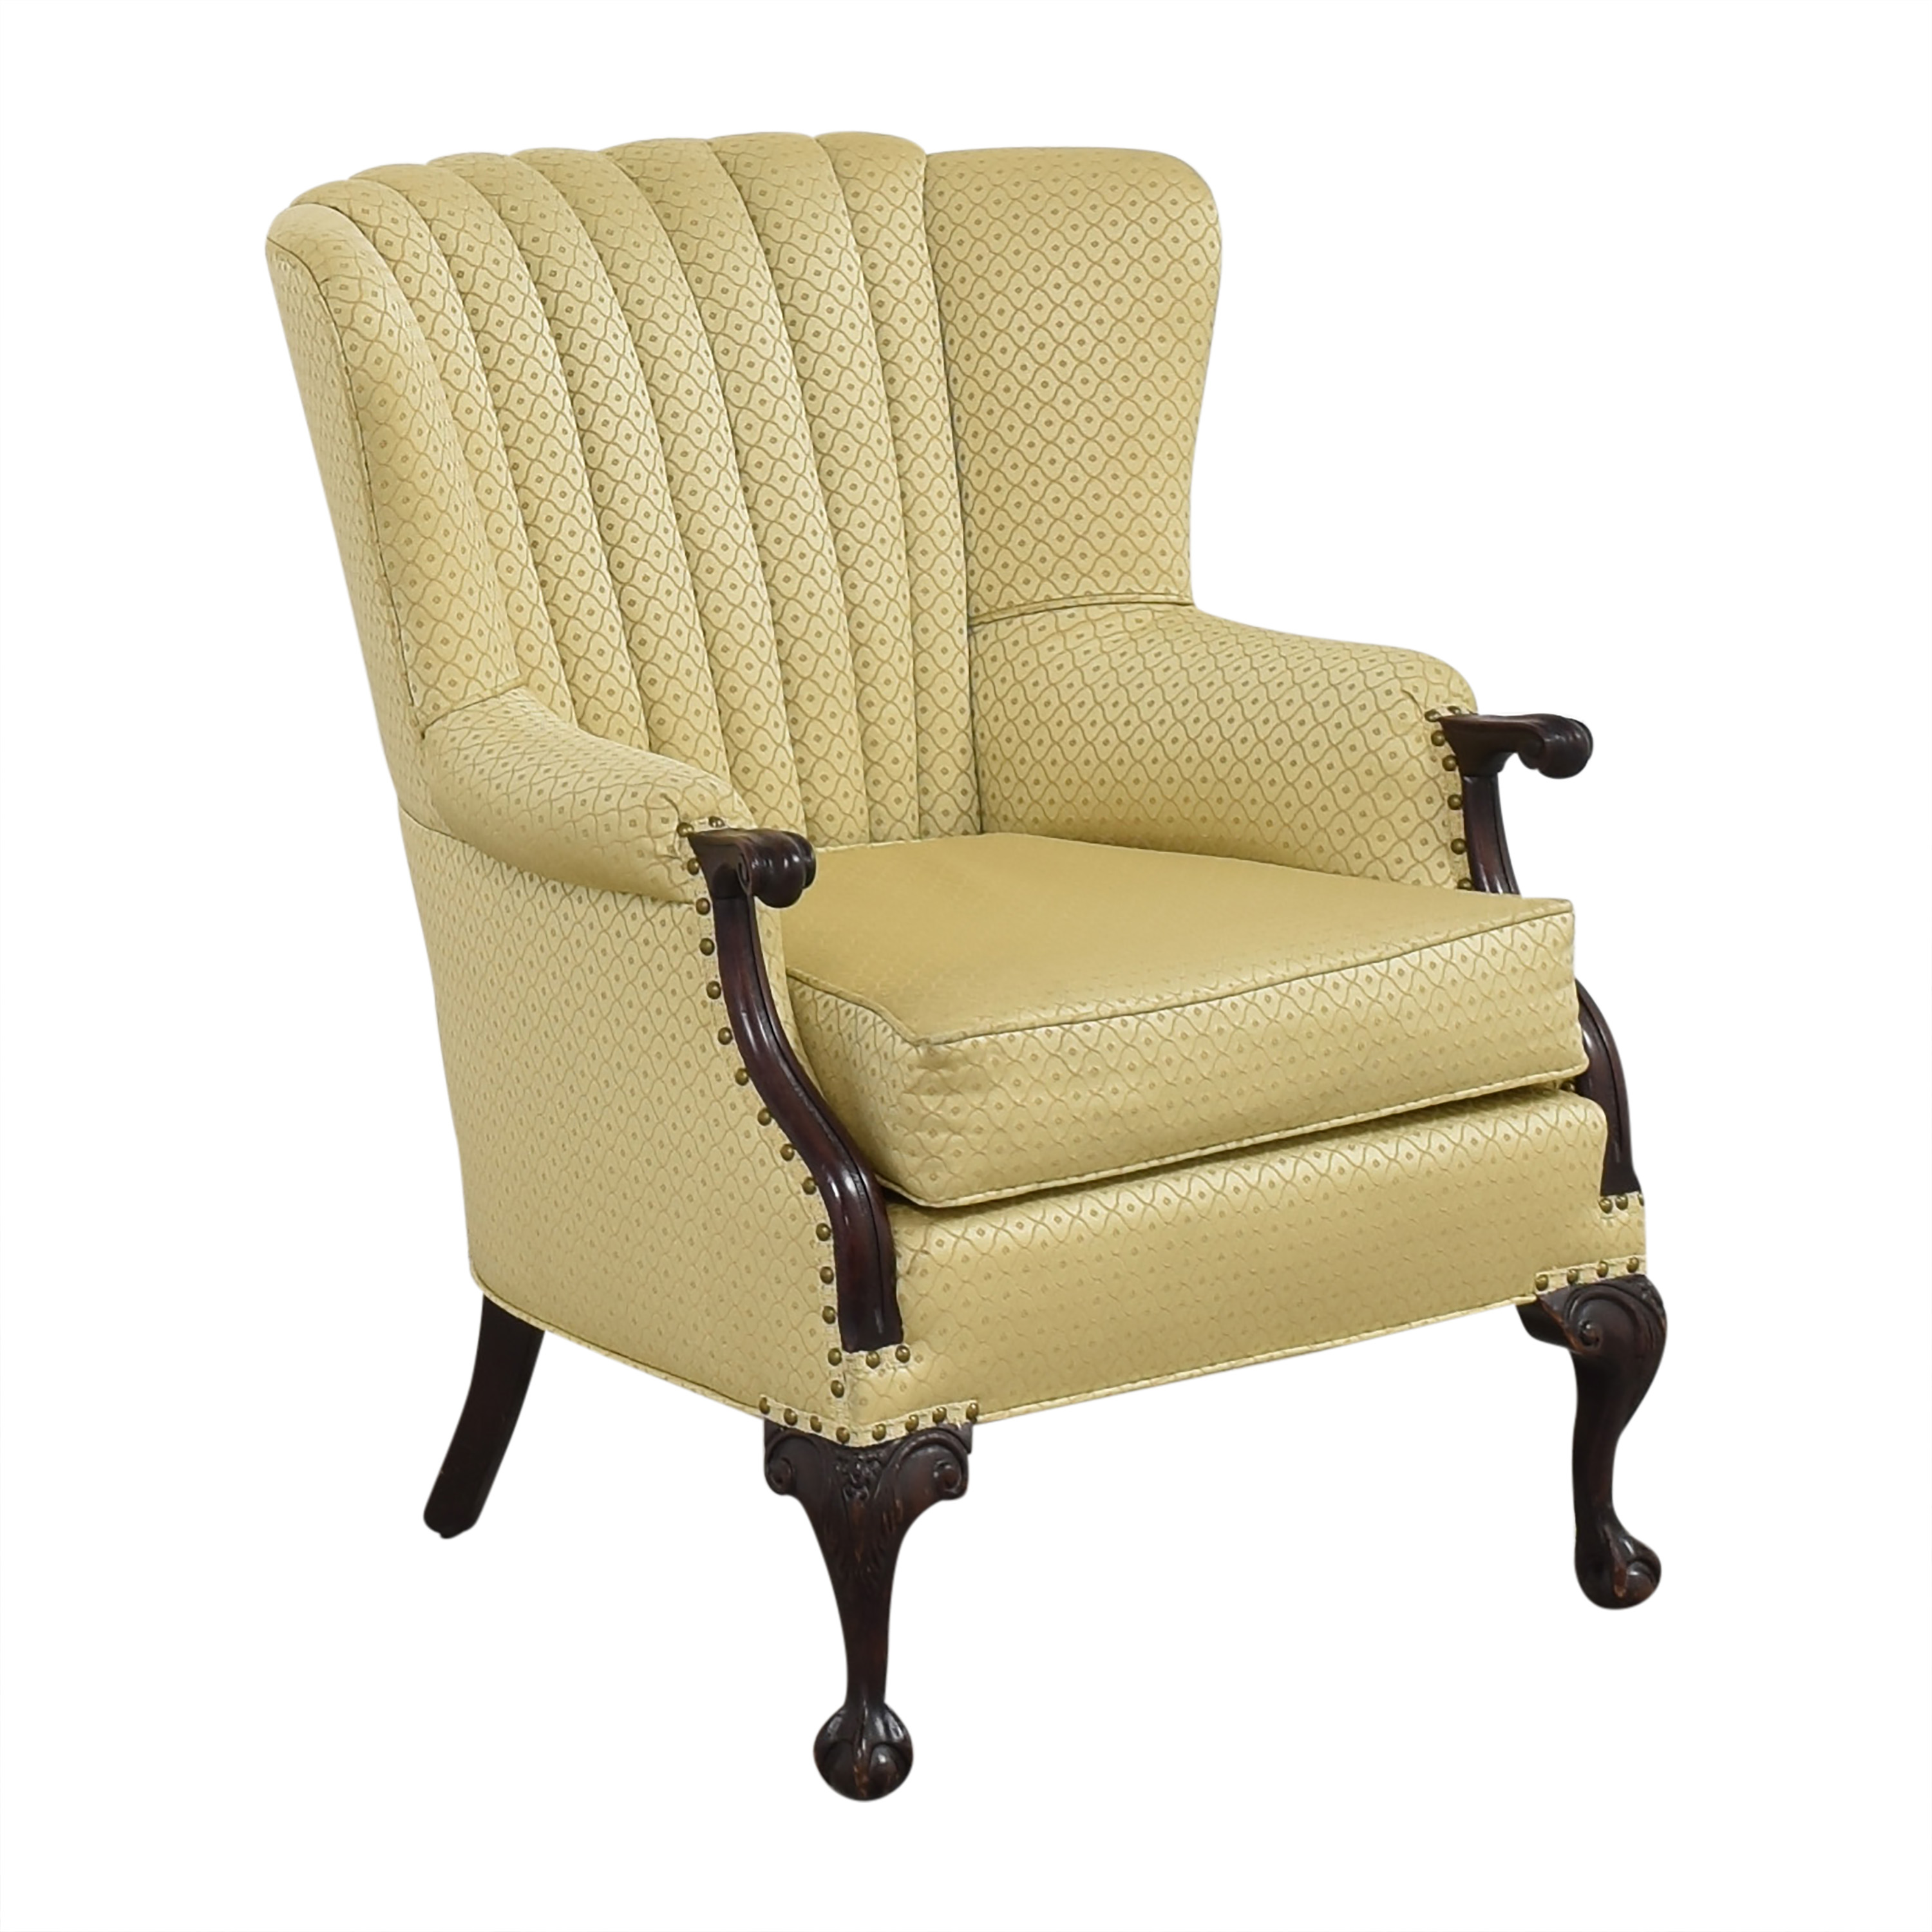 Pleated Accent Chair price